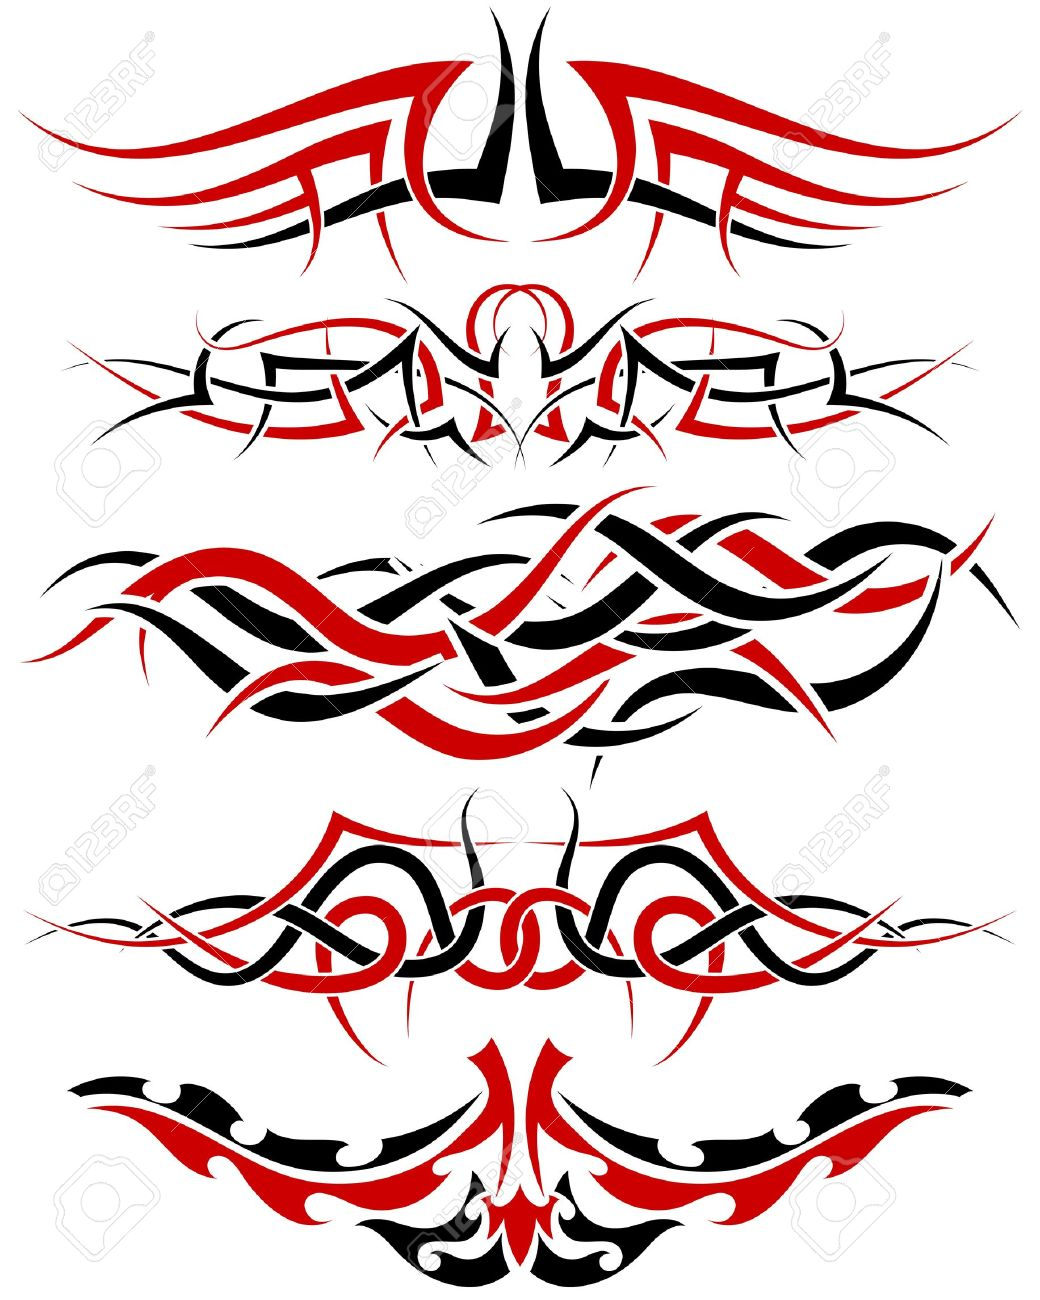 Patterns Of Black And Red Tribal Tattoo For Design Use Royalty Free